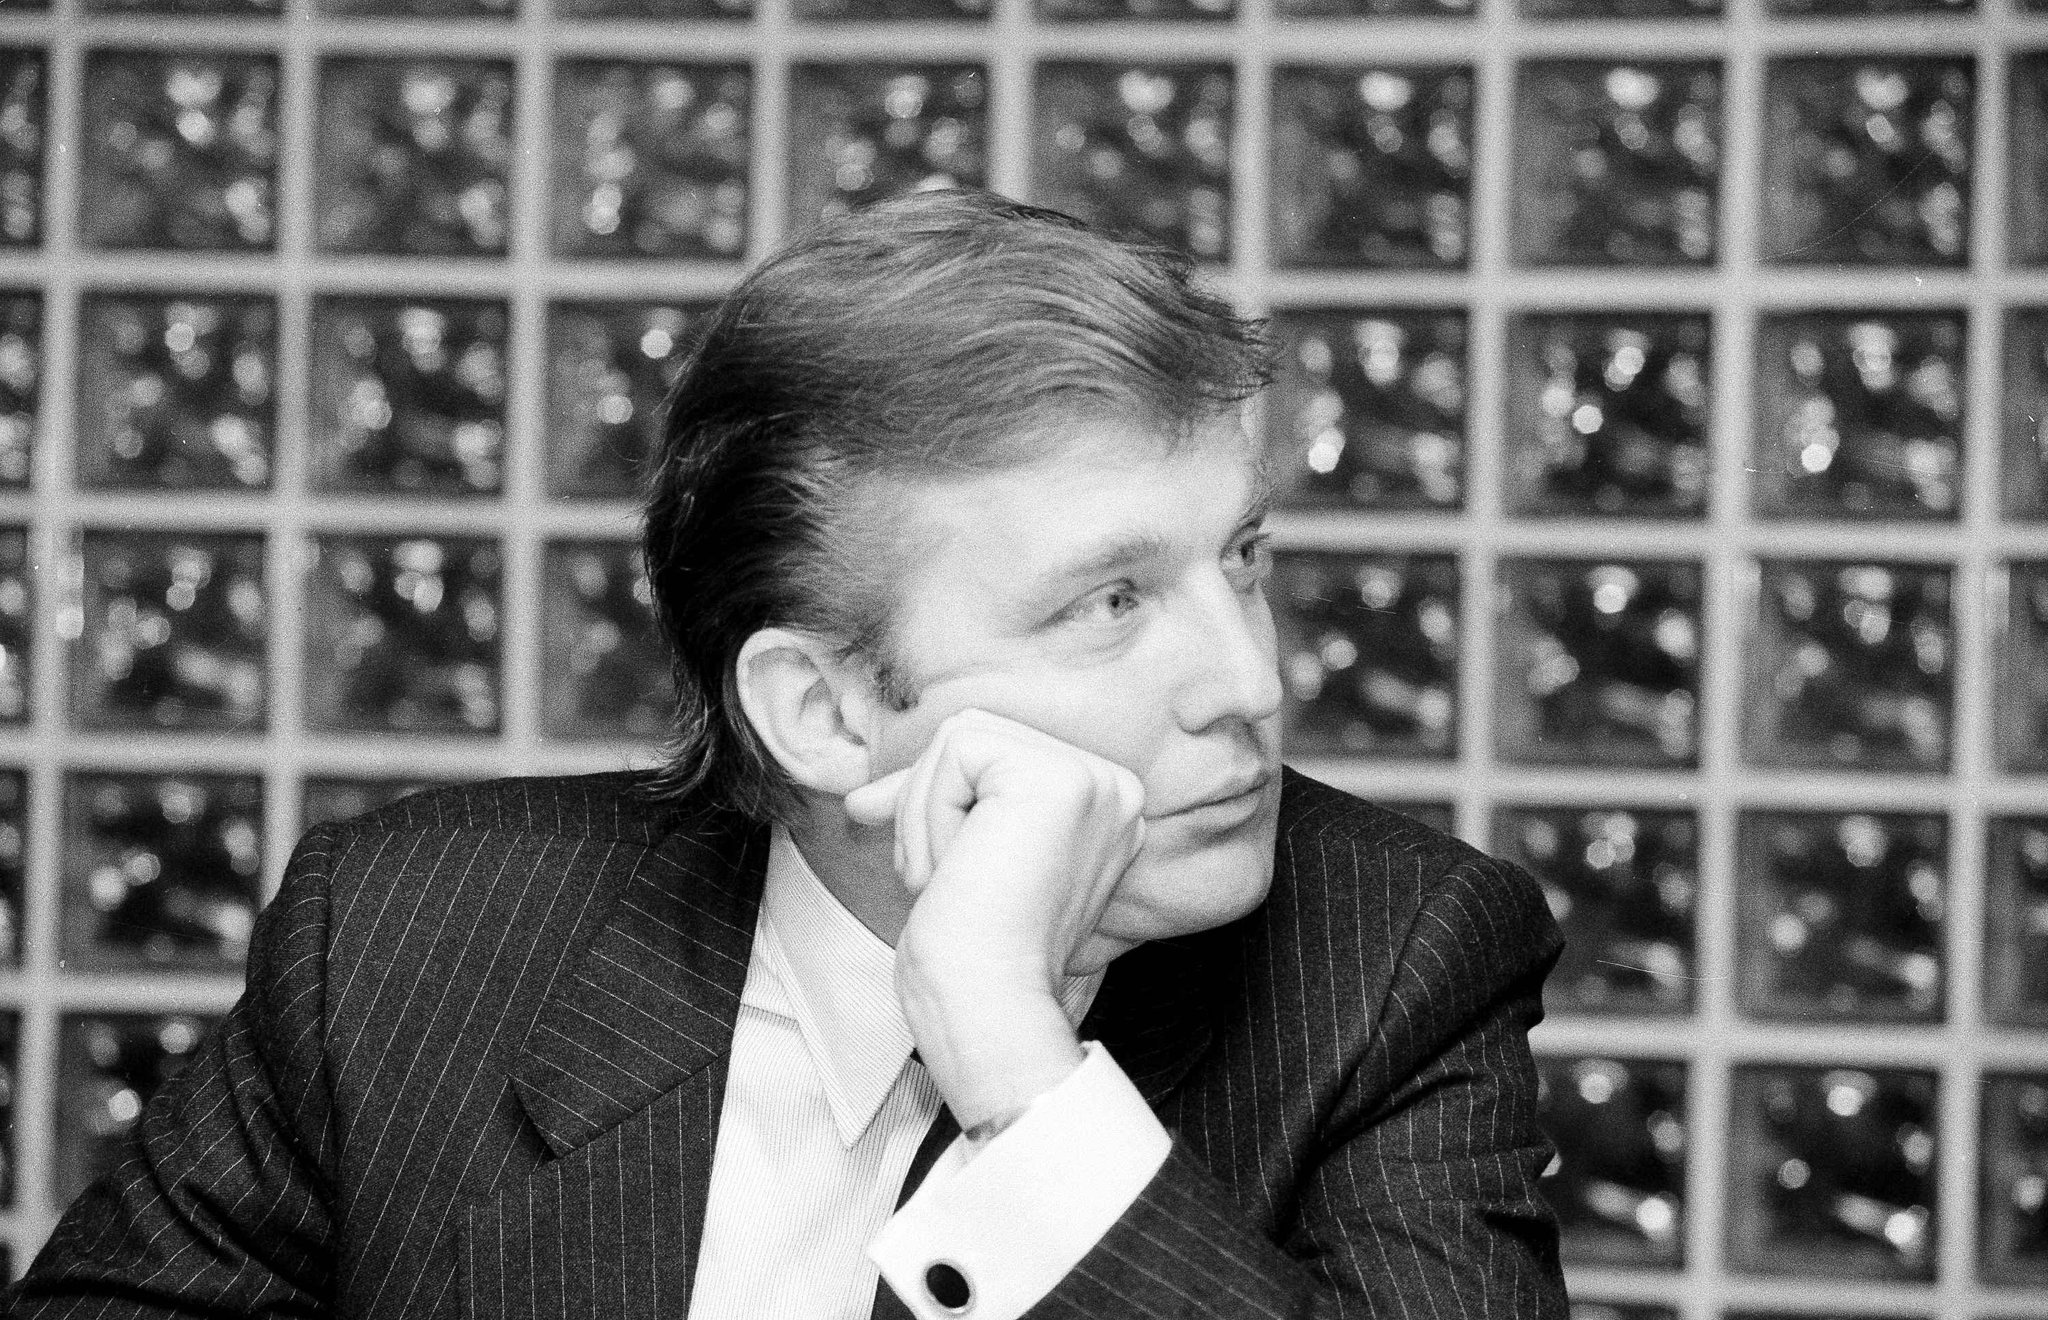 In 1987, Trump traveled to the Soviet Union. The KGB almost certainly made the trip happen. https://t.co/XfCp0YhycK https://t.co/ycosPaB9xt